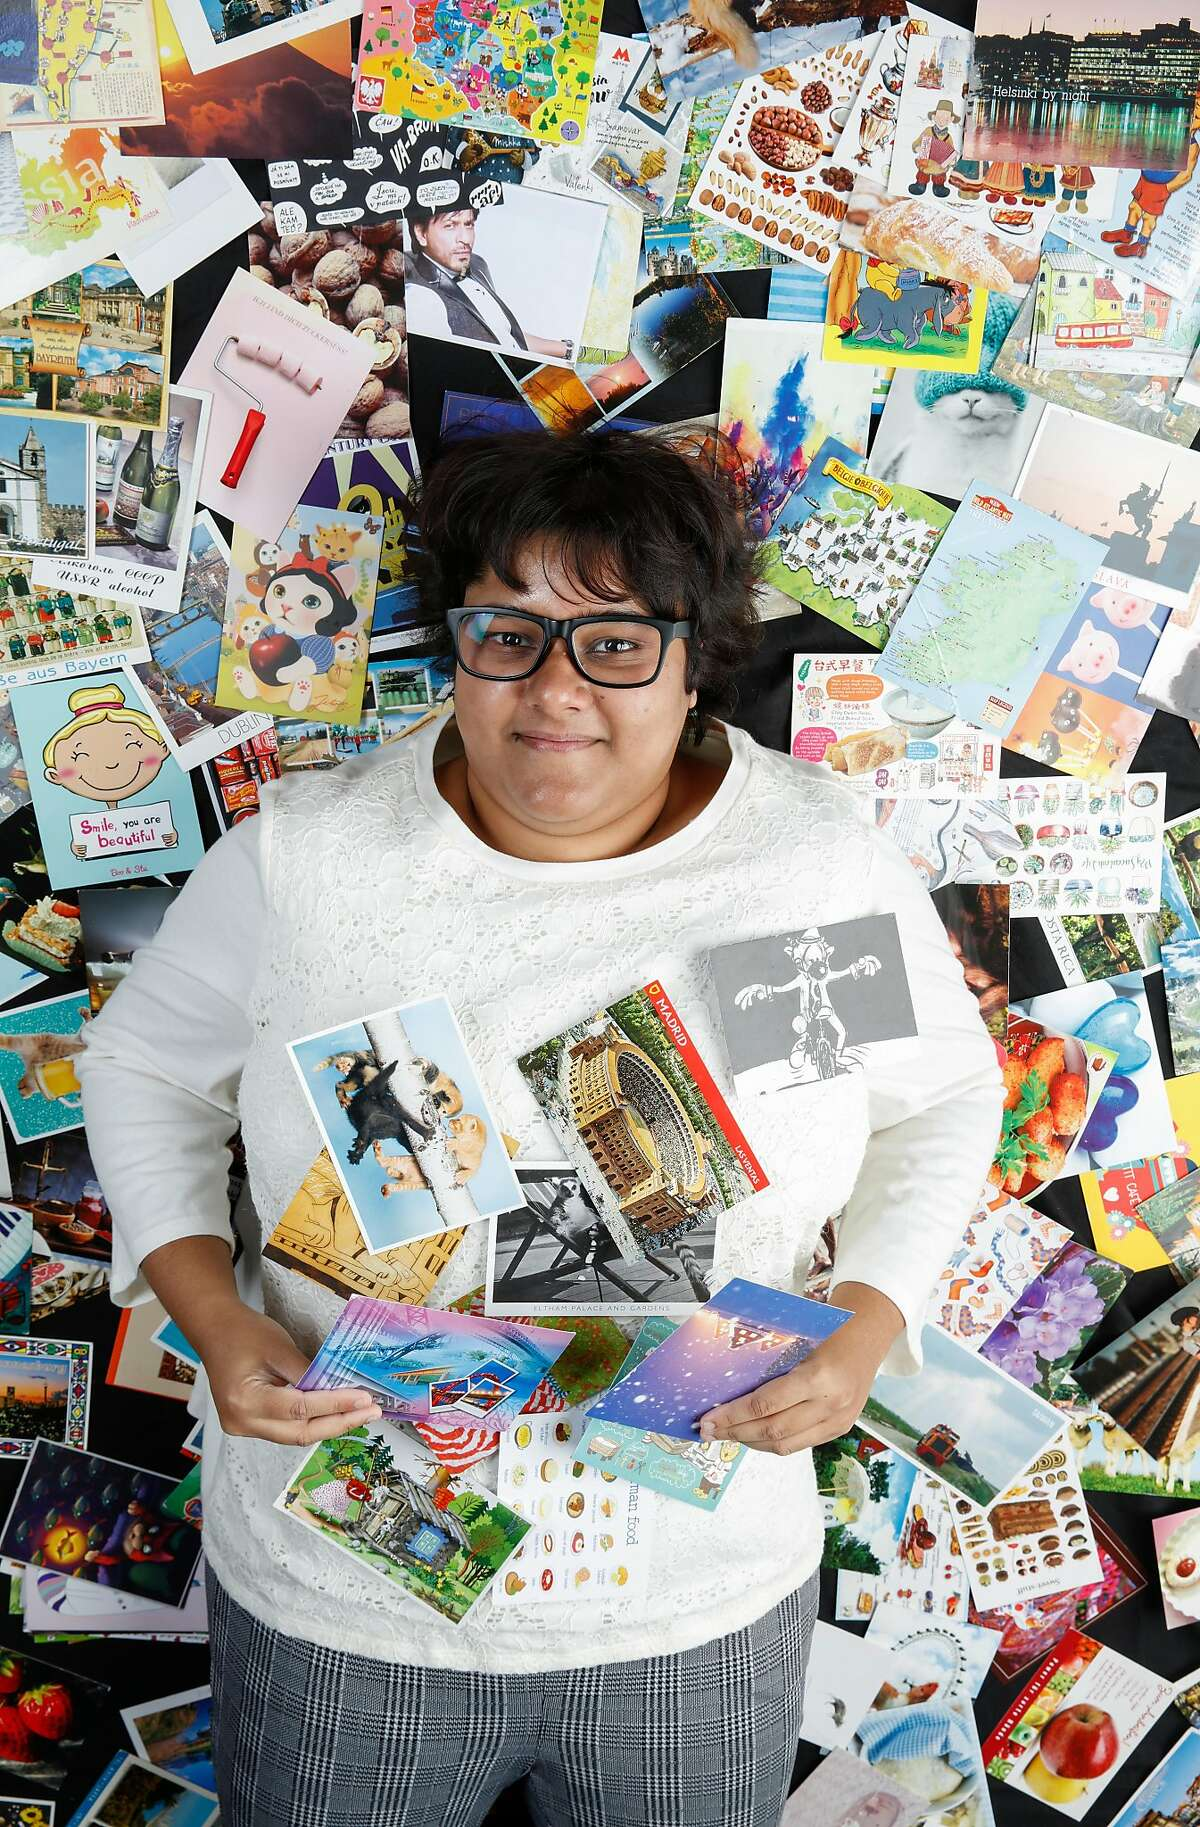 Rumana Sultana, who has been collecting postcards for years, cozies up to part of her collection of over 3,000 postcards.